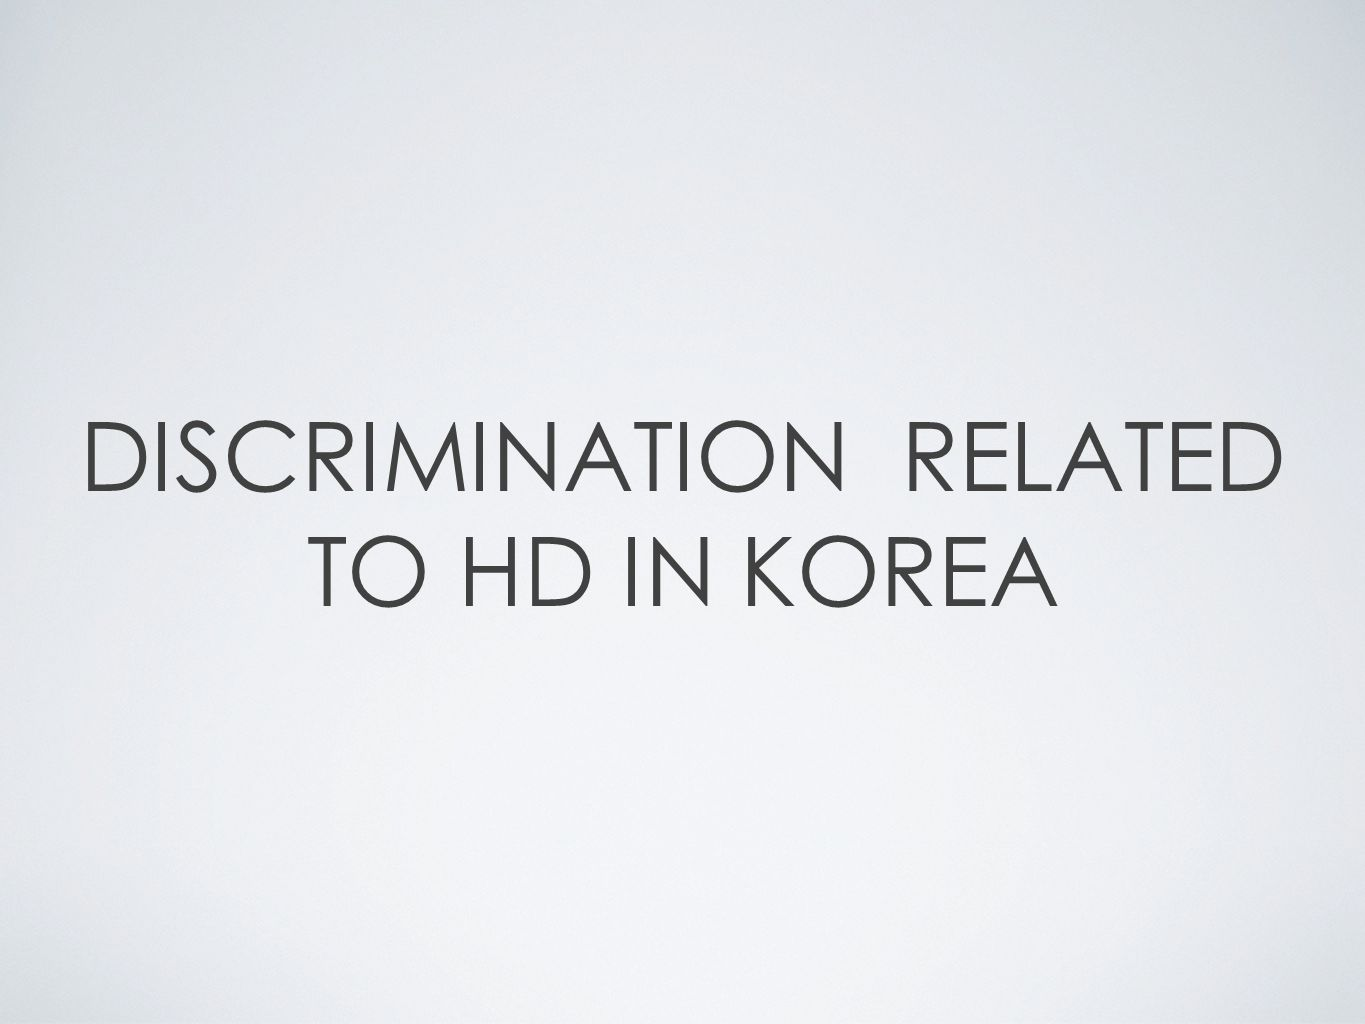 DISCRIMINATION RELATED TO HD IN KOREA